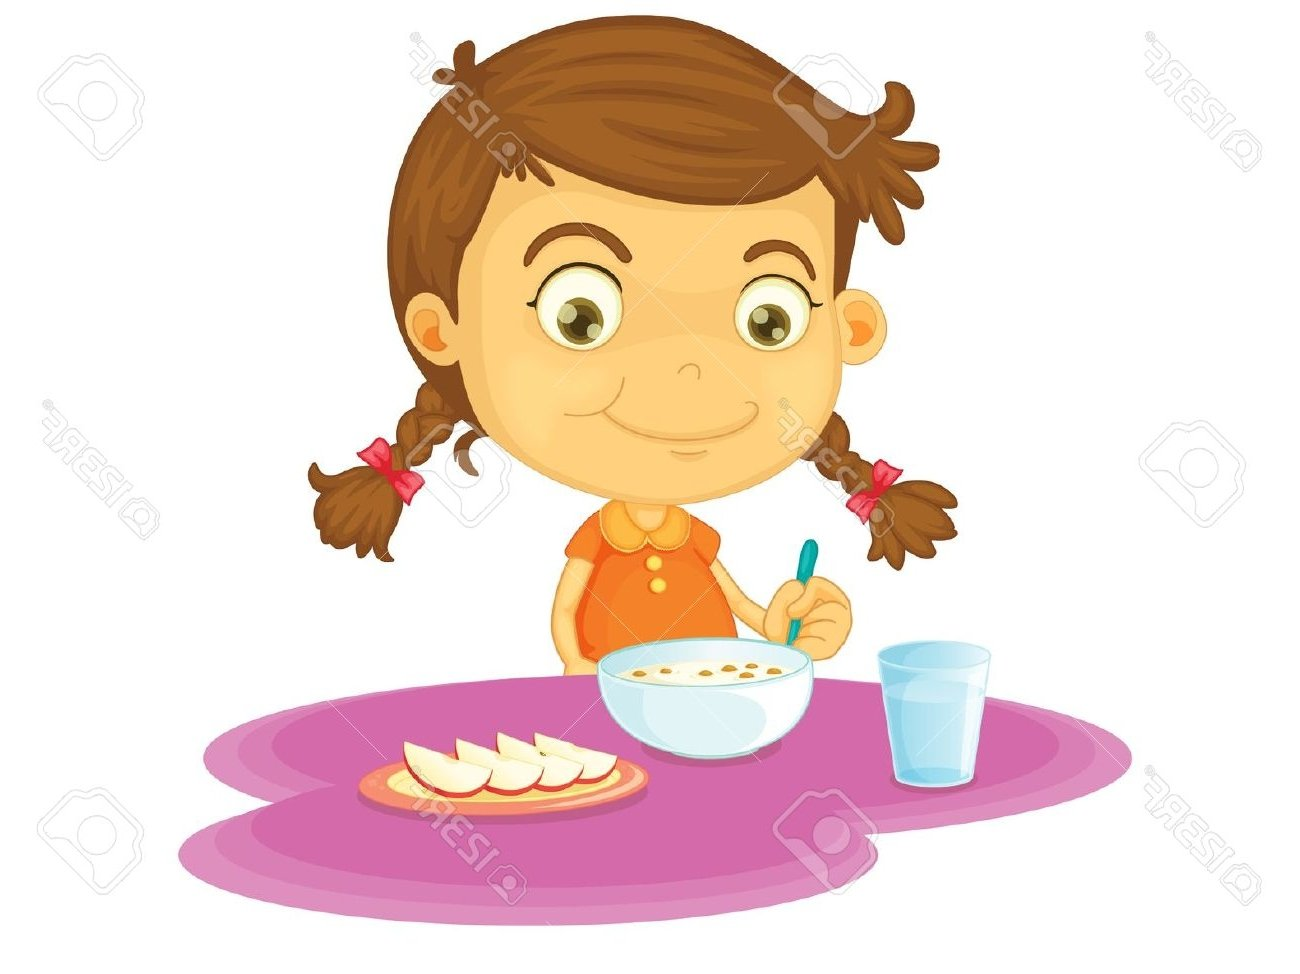 A Girl Eating Breakfast Clipart.